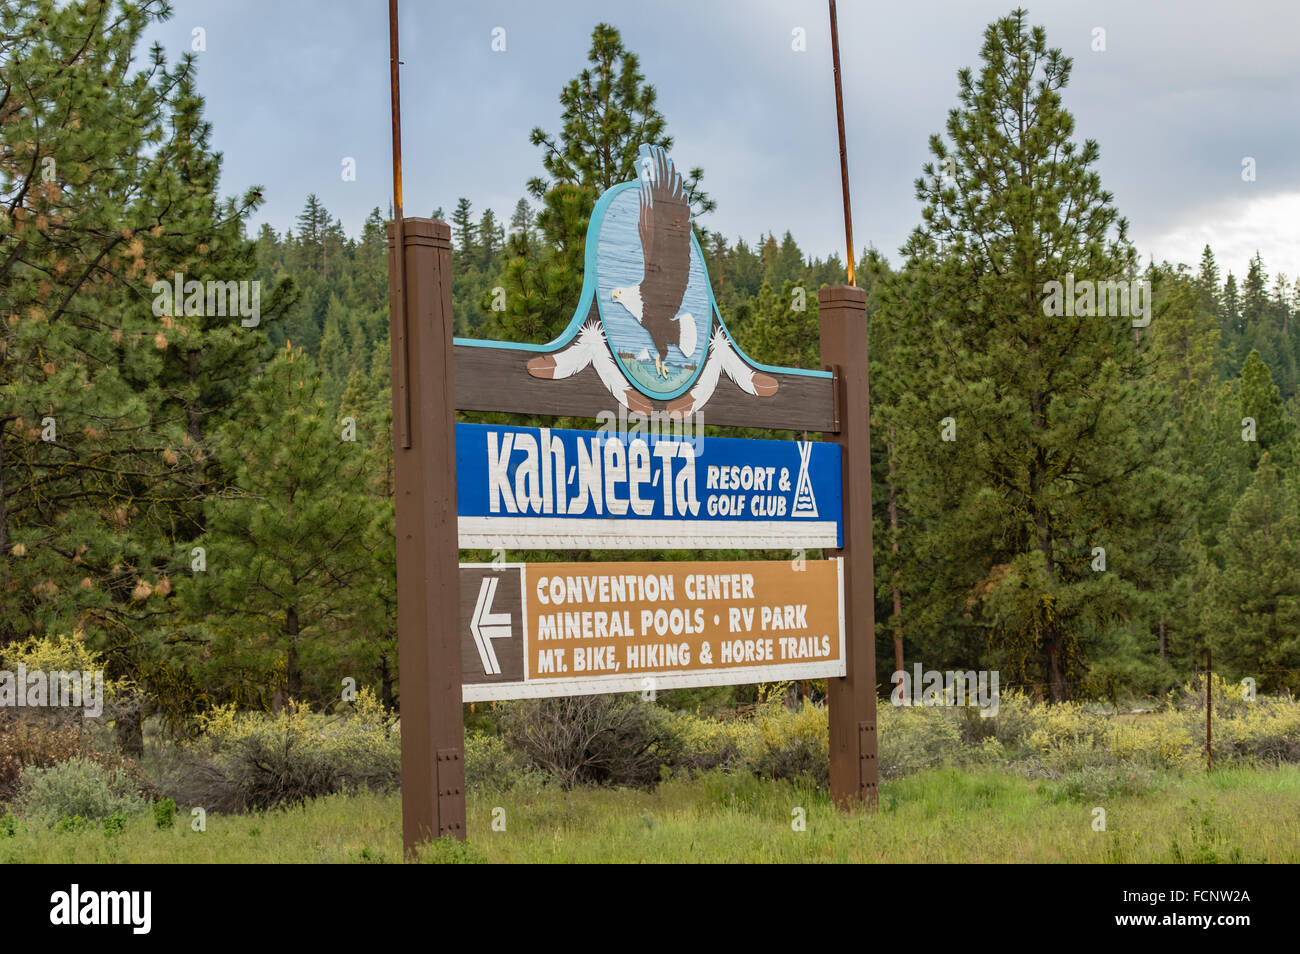 Road sign for the Kah Nee Ta resort and convention center